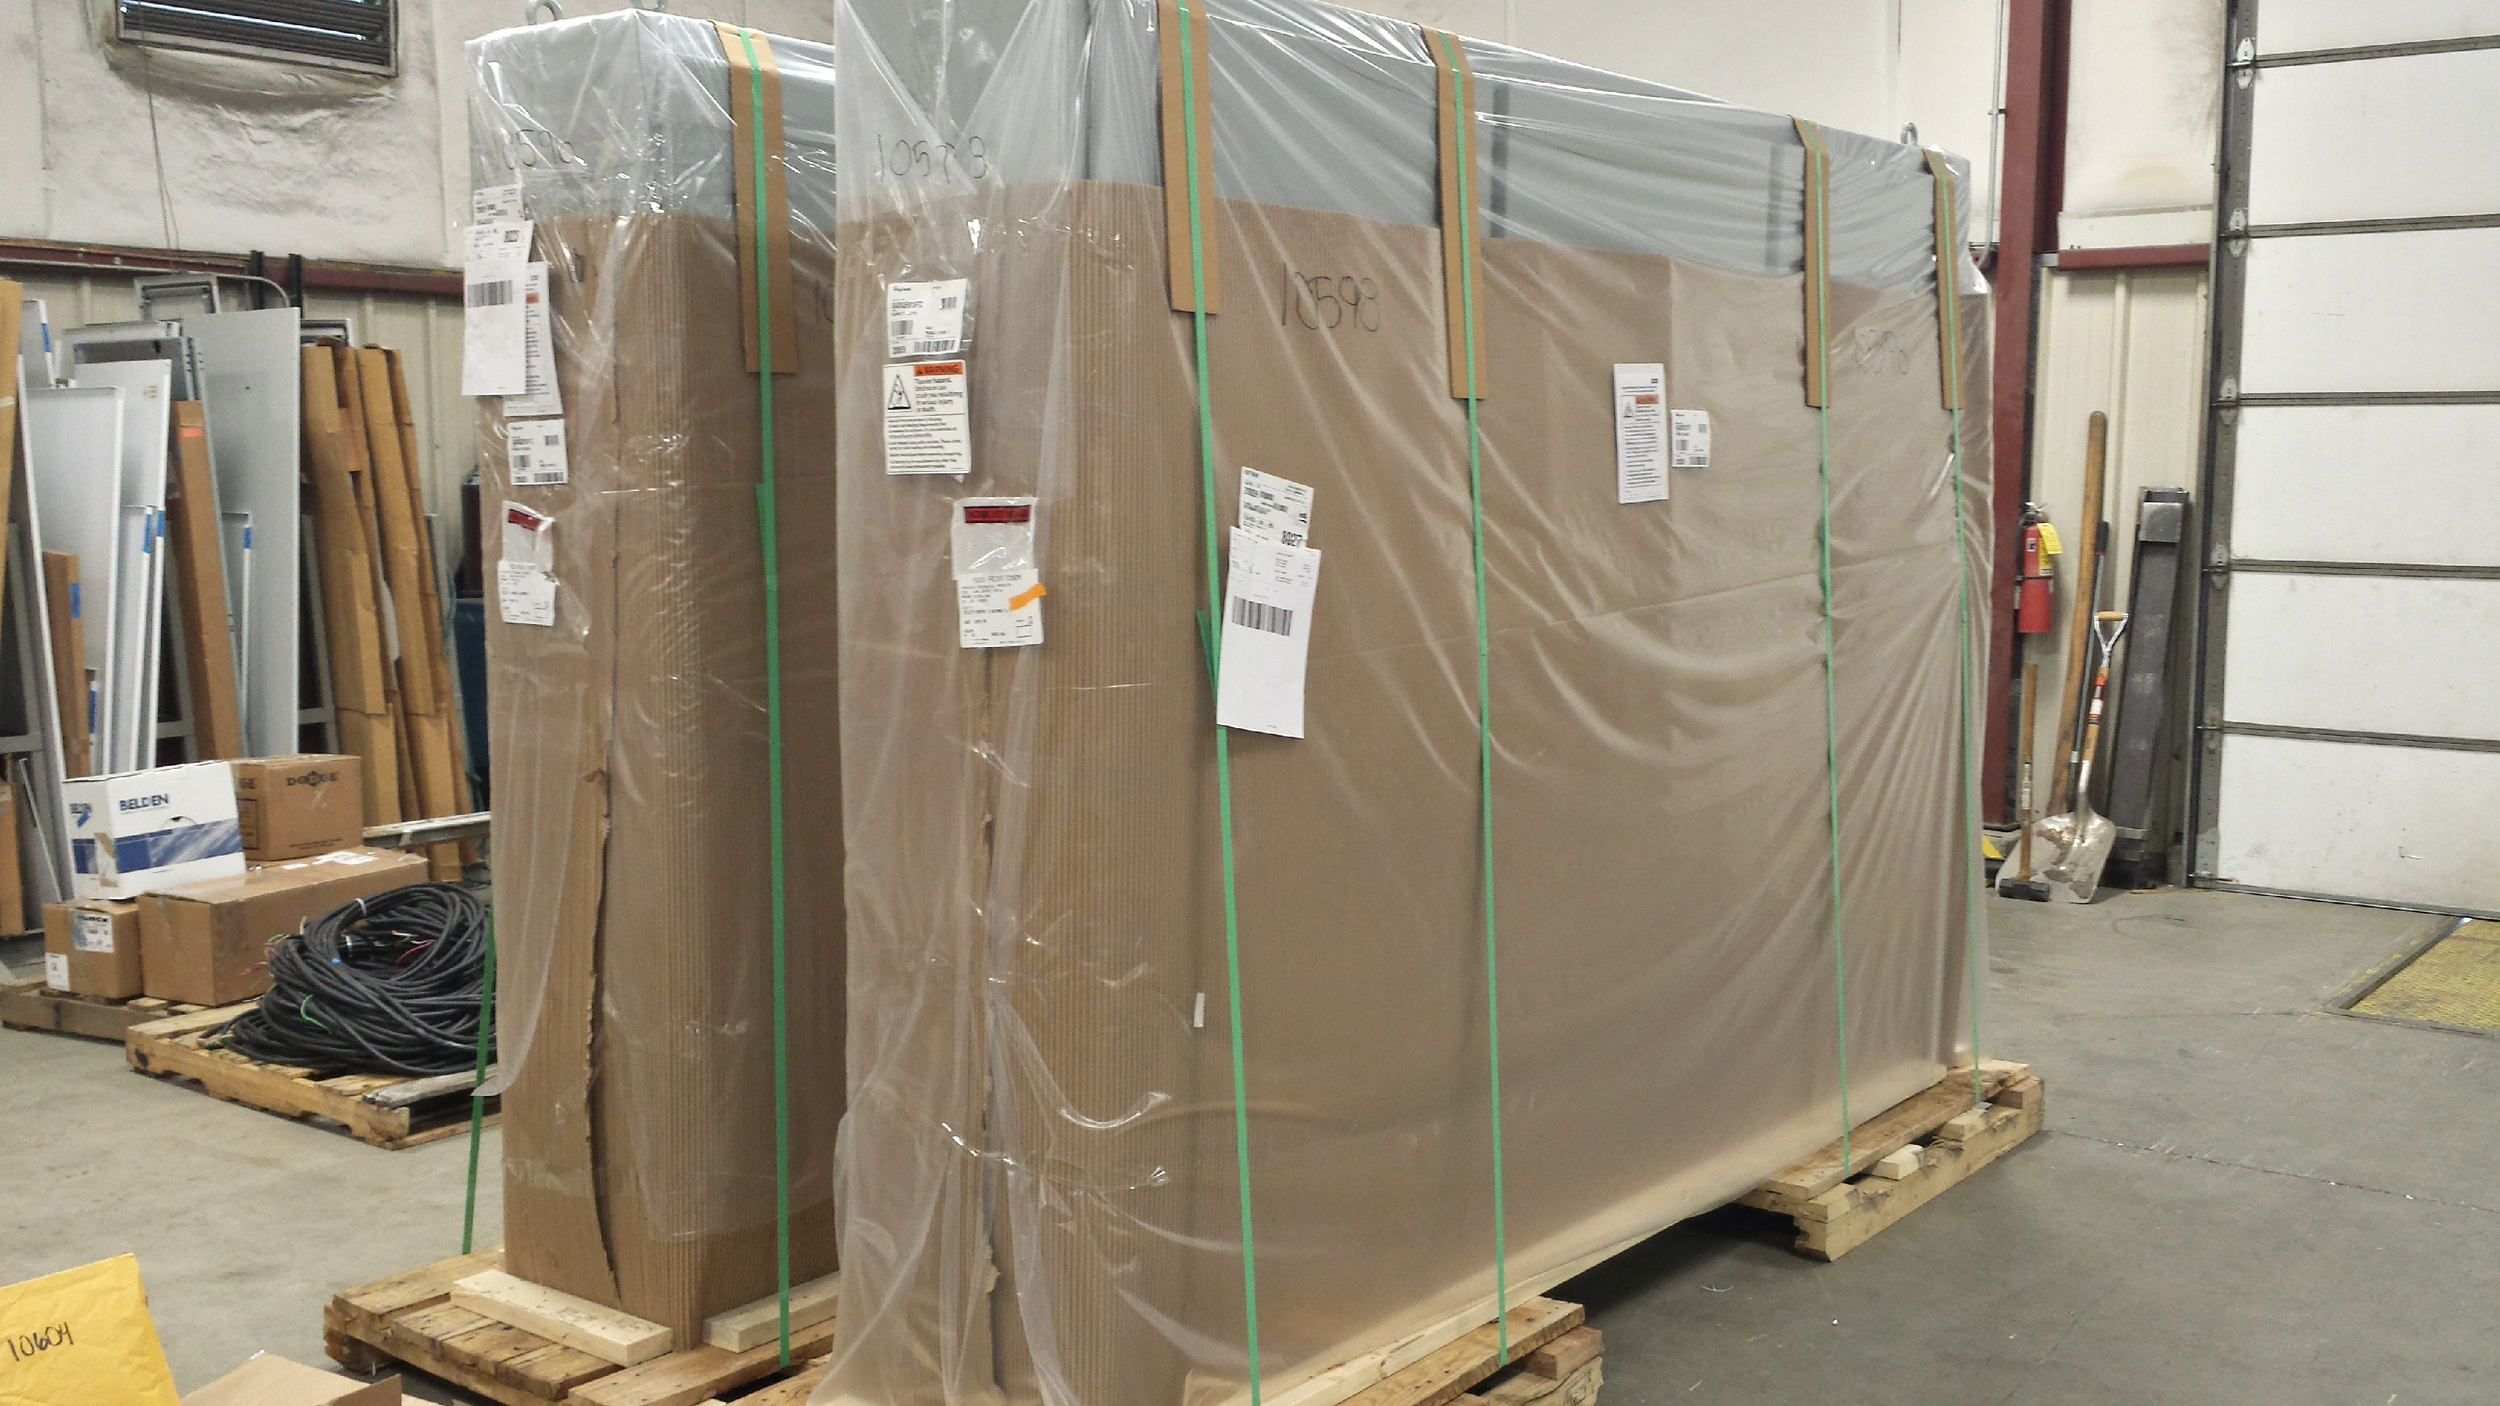 These panels will be fabricated for Ball Packaging and then transported to Wallkill, NY.